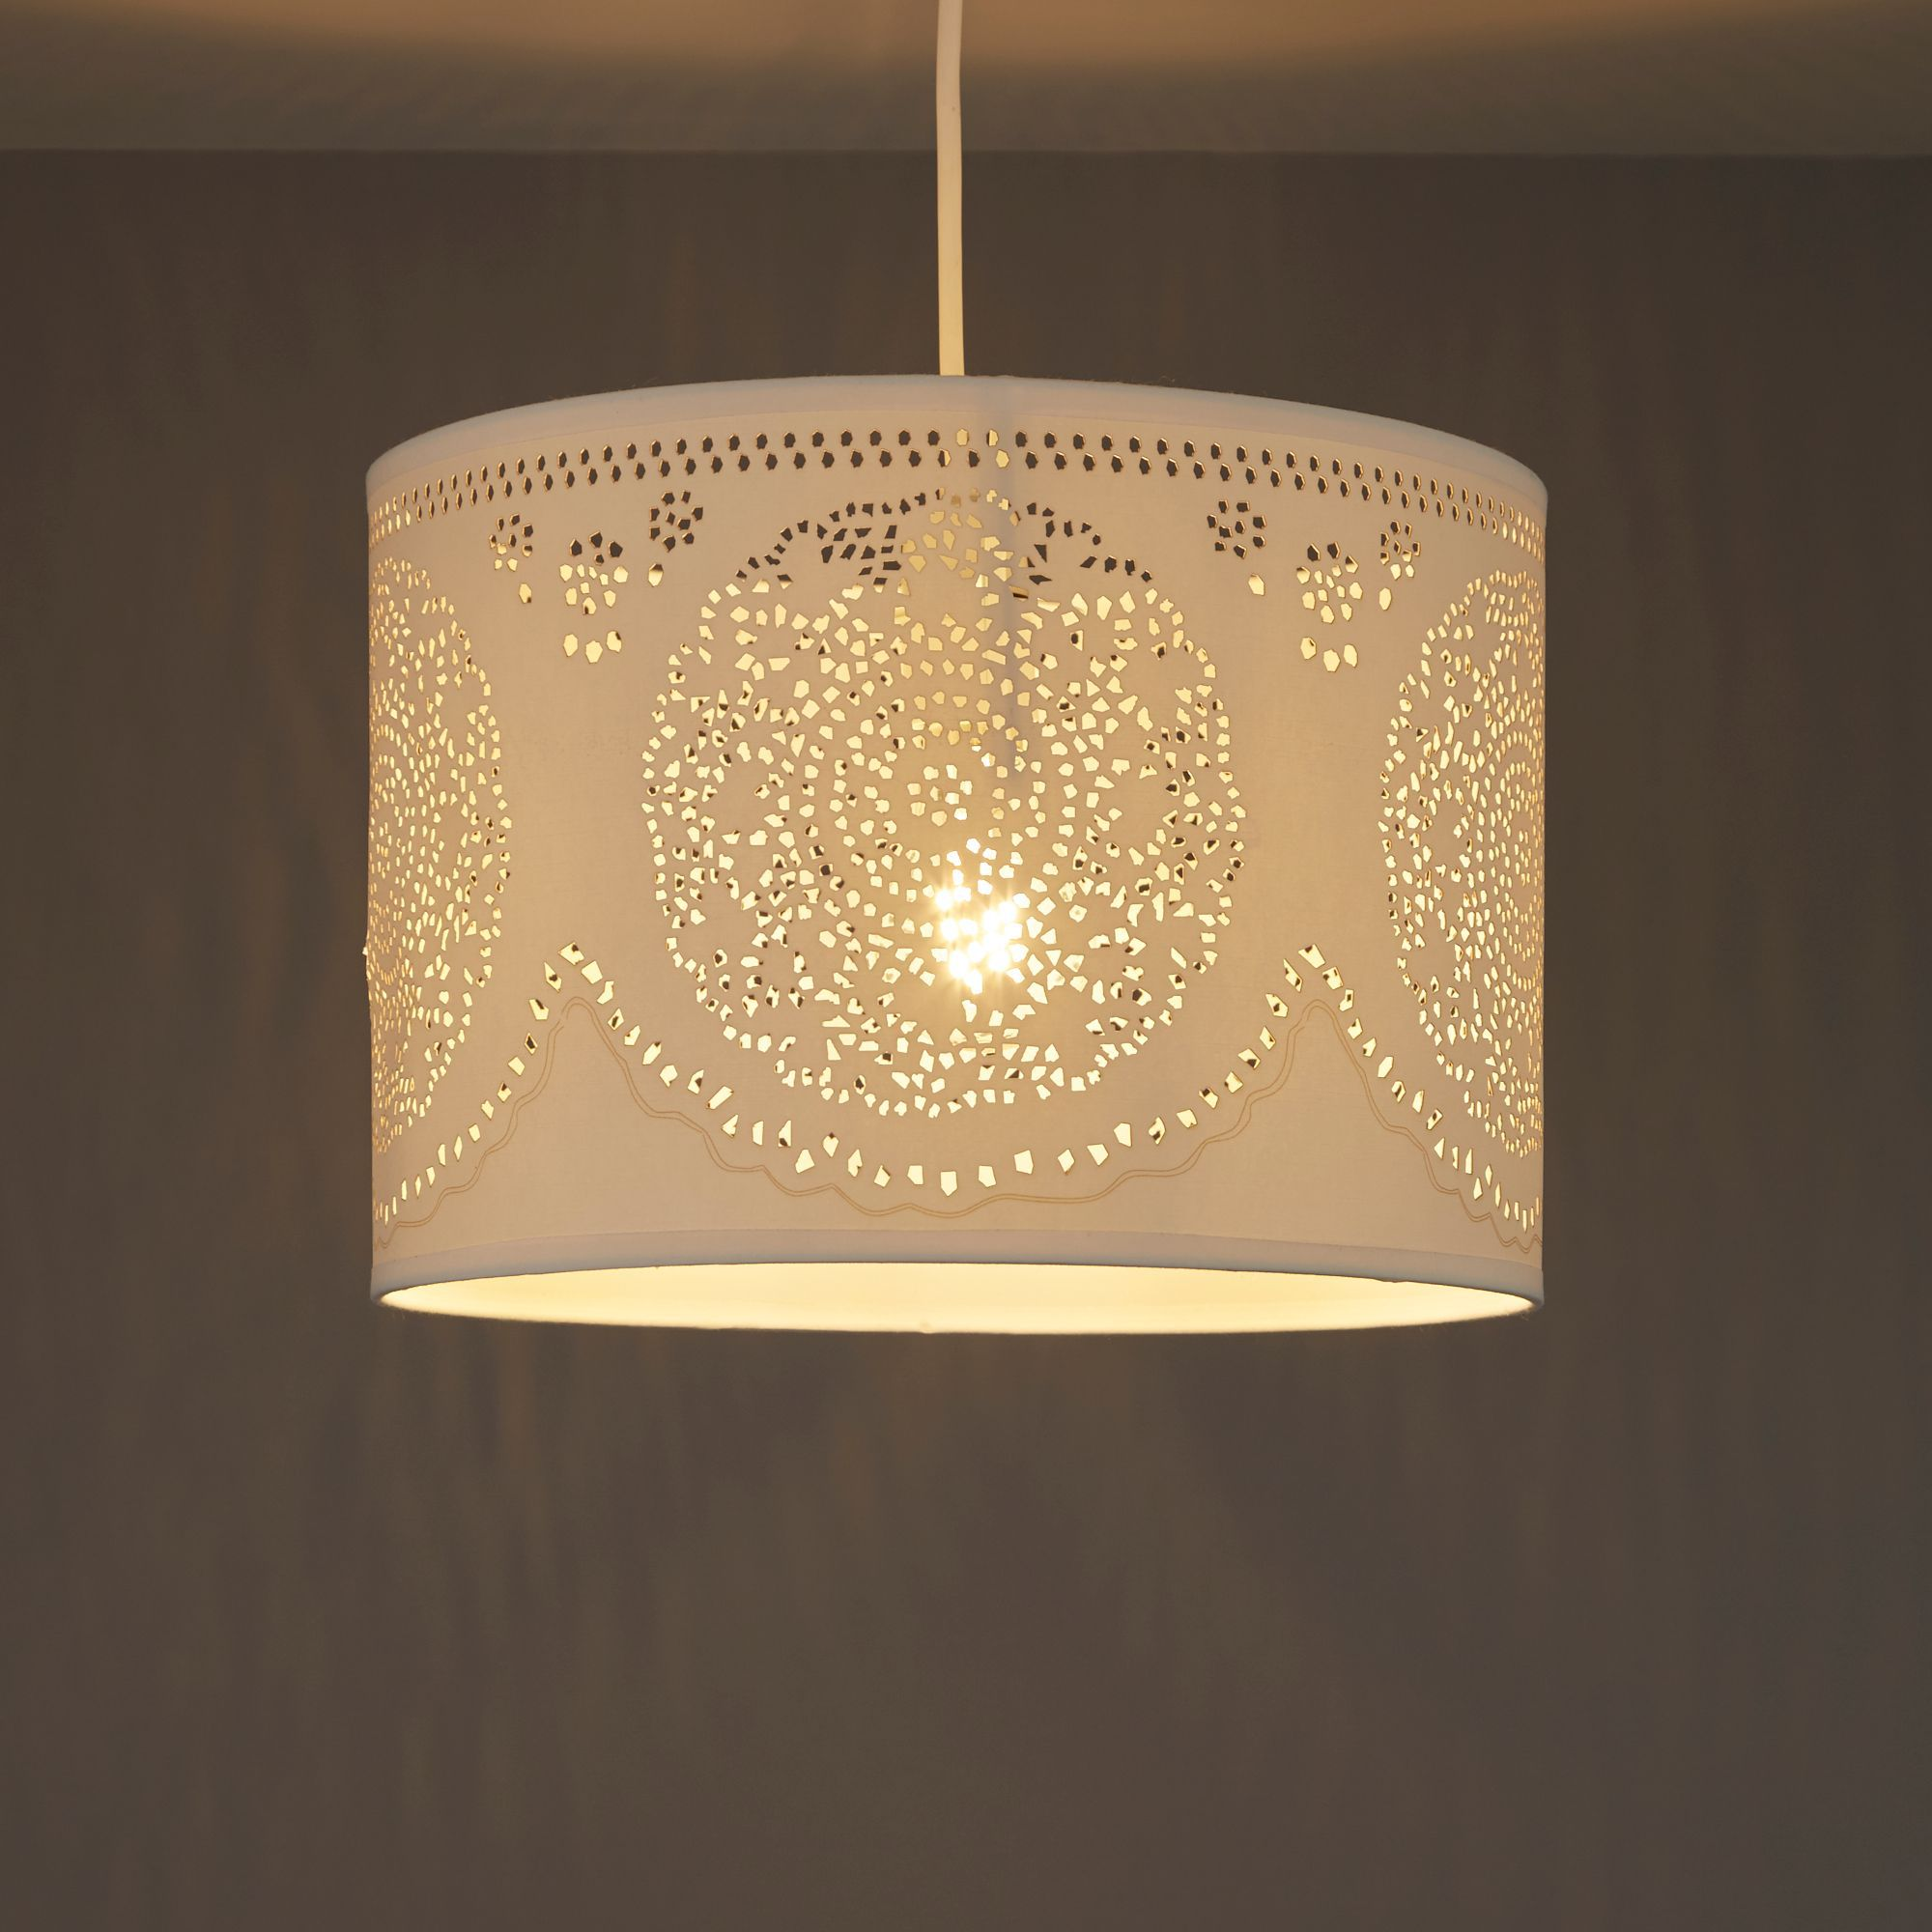 Diy at bq ivory doily cylinder pendant light shade d300mm arubaitofo Images